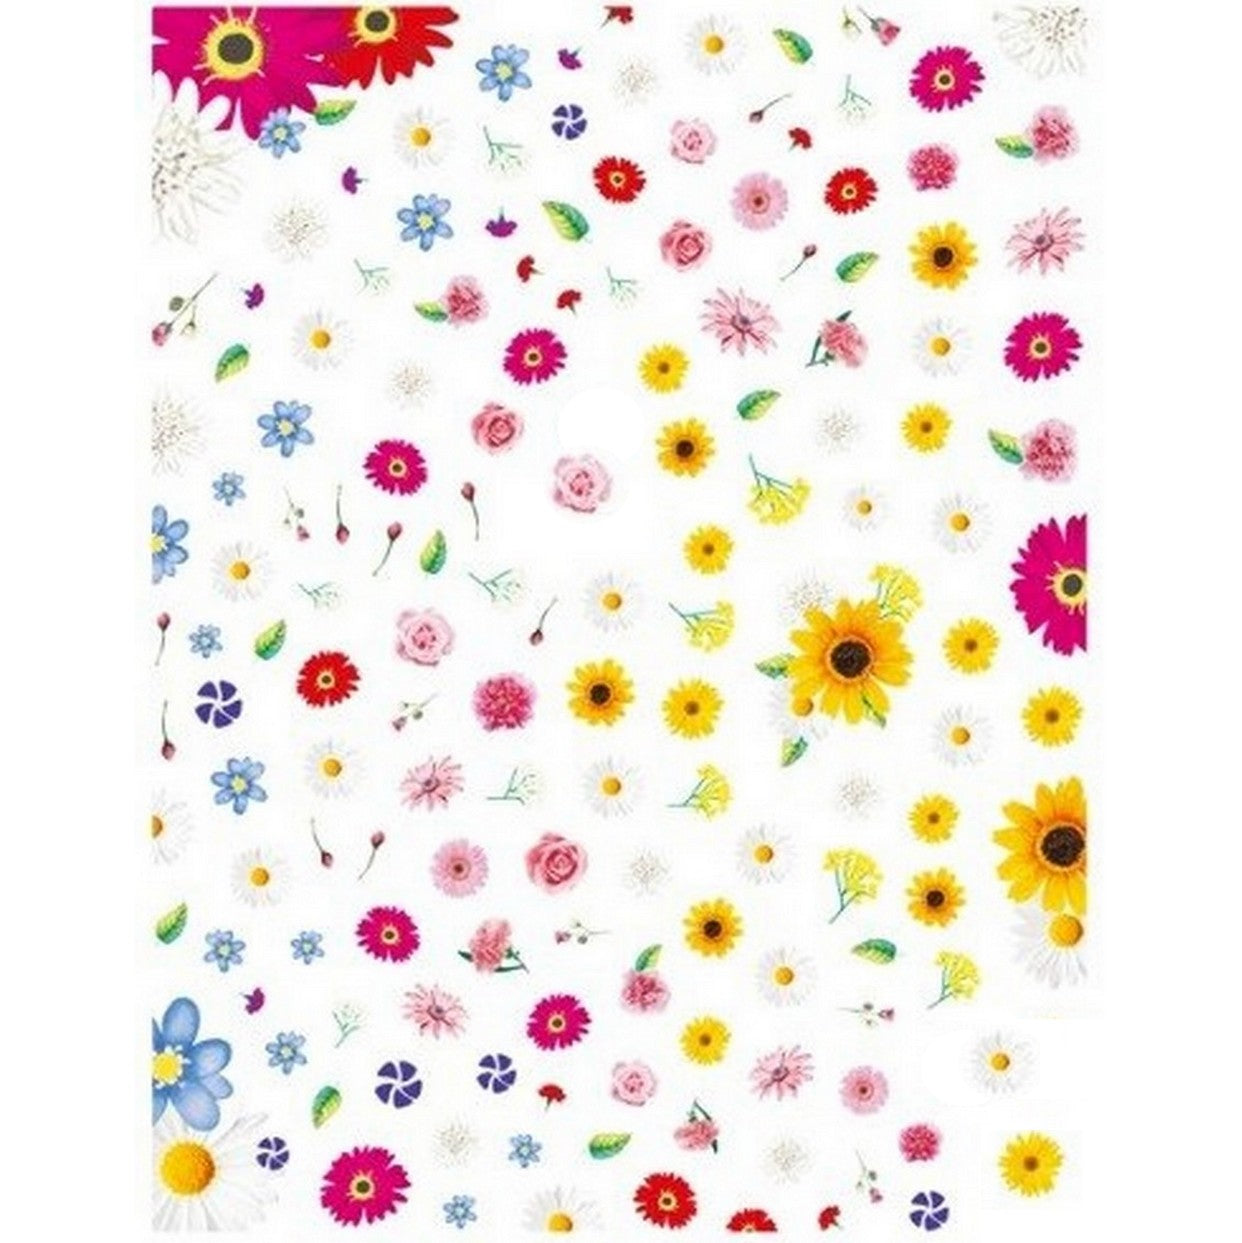 Floral Flower Variety Mix Stickers